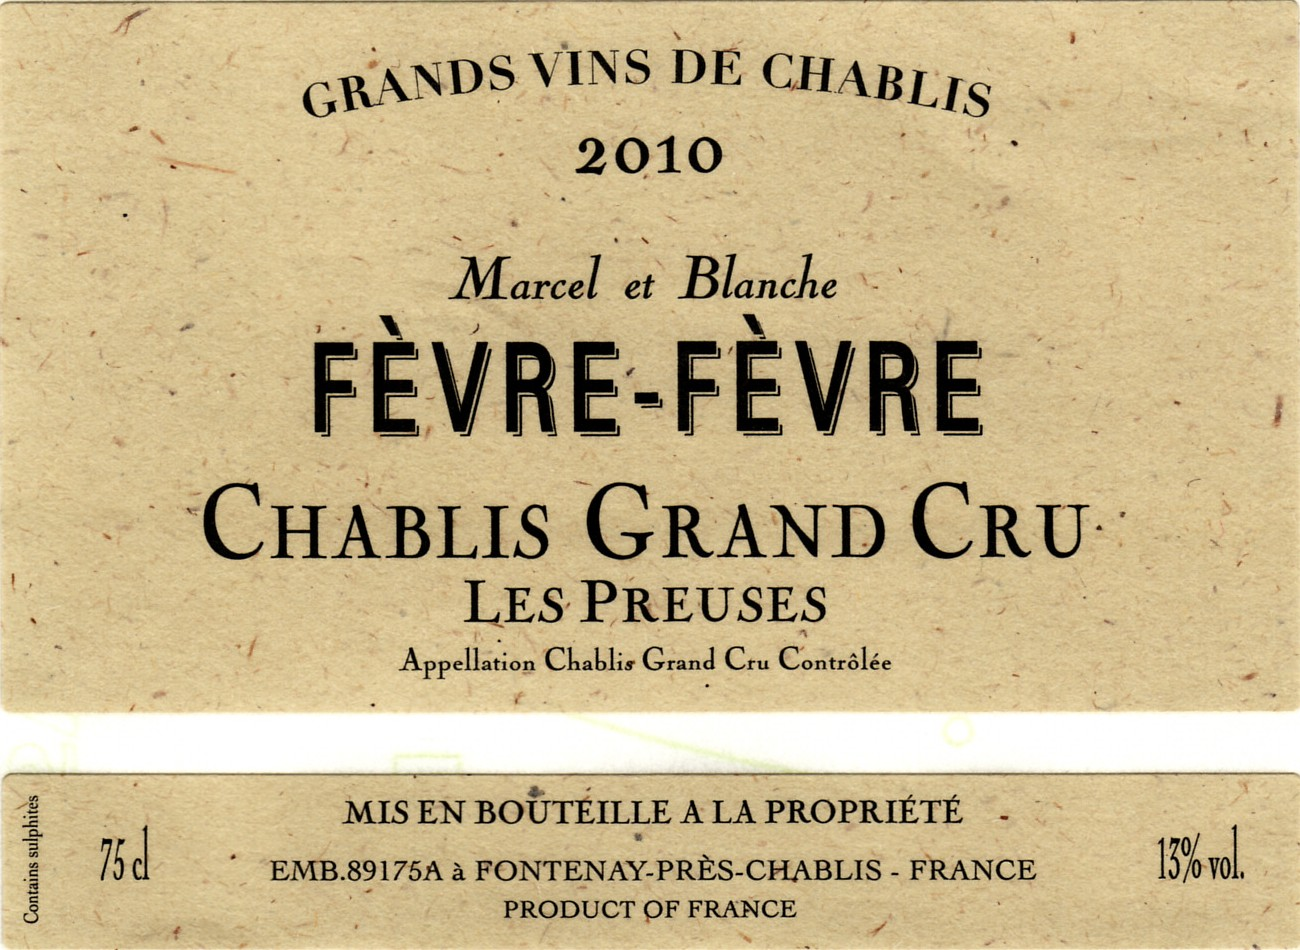 A brilliant pale yellow, the nose has a beautiful array of mineral, floral and fruity notes.There is a liveliness on the palate, which gives a pleasant sensation of freshness, and very long-lasting aromas. In this Chablis Grand Cru, Chardonnay expresses all its delicacy and elegance…